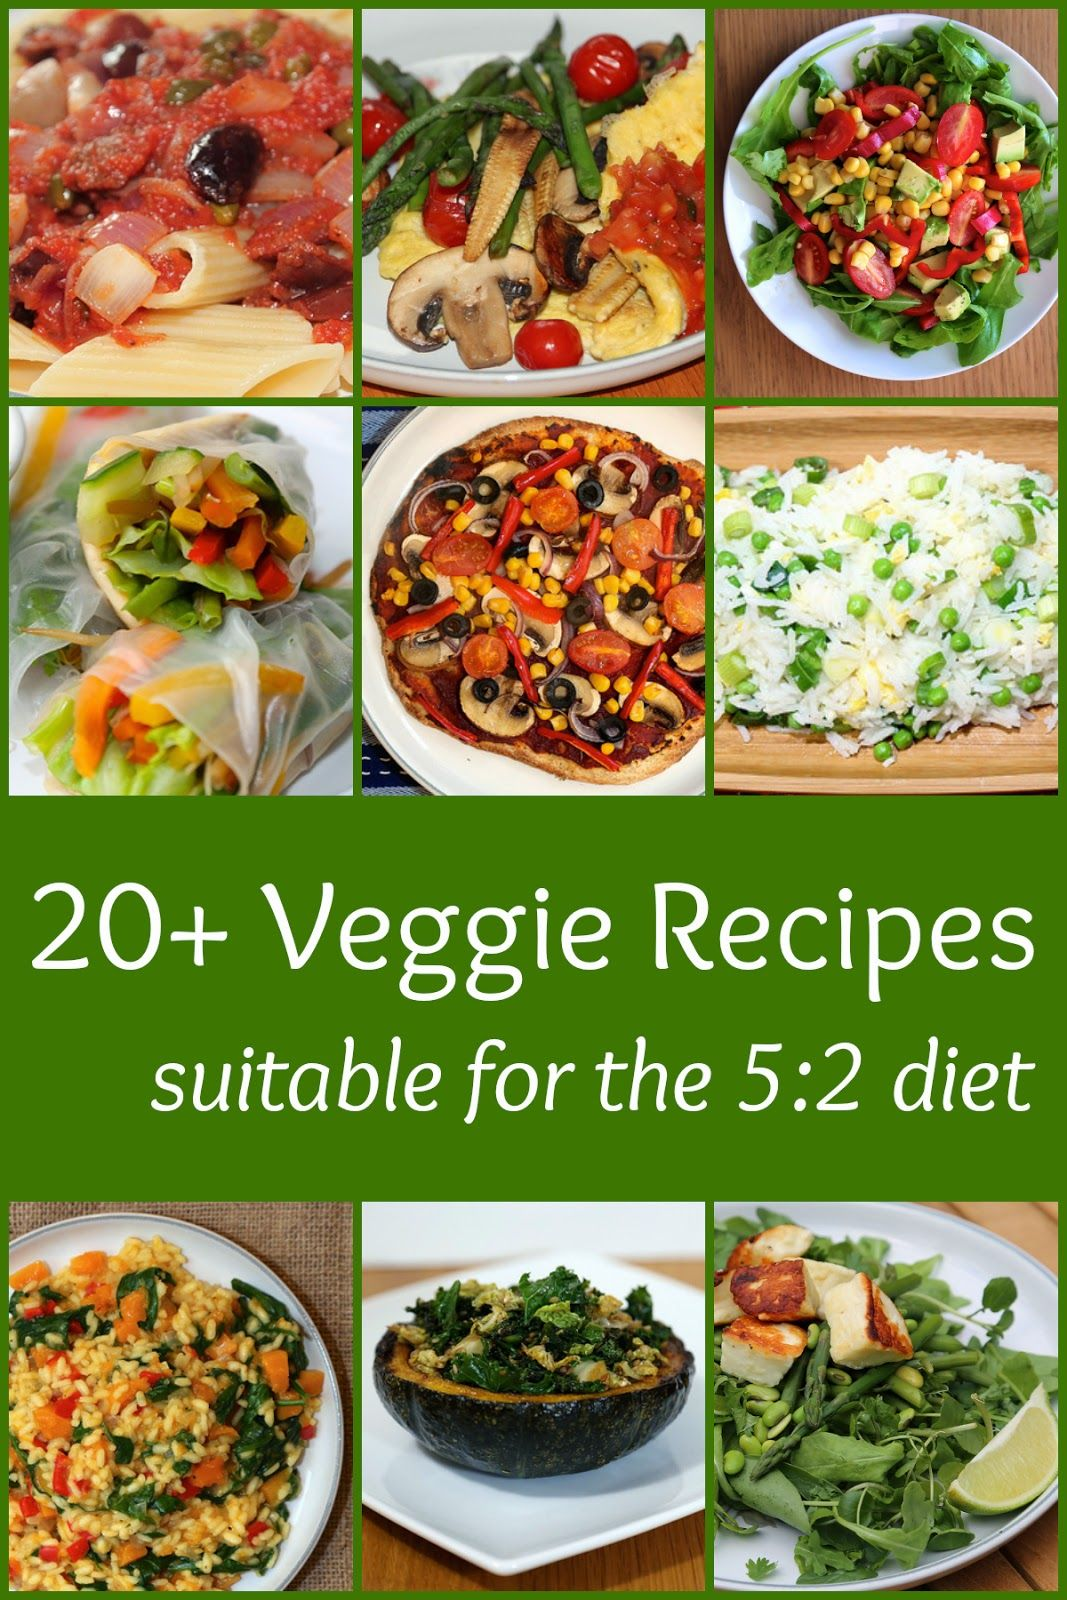 Vegetarian Recipes For Intermittent Fasting Diets Vegetarian Diet Vegetarian Recipes Diet Recipes